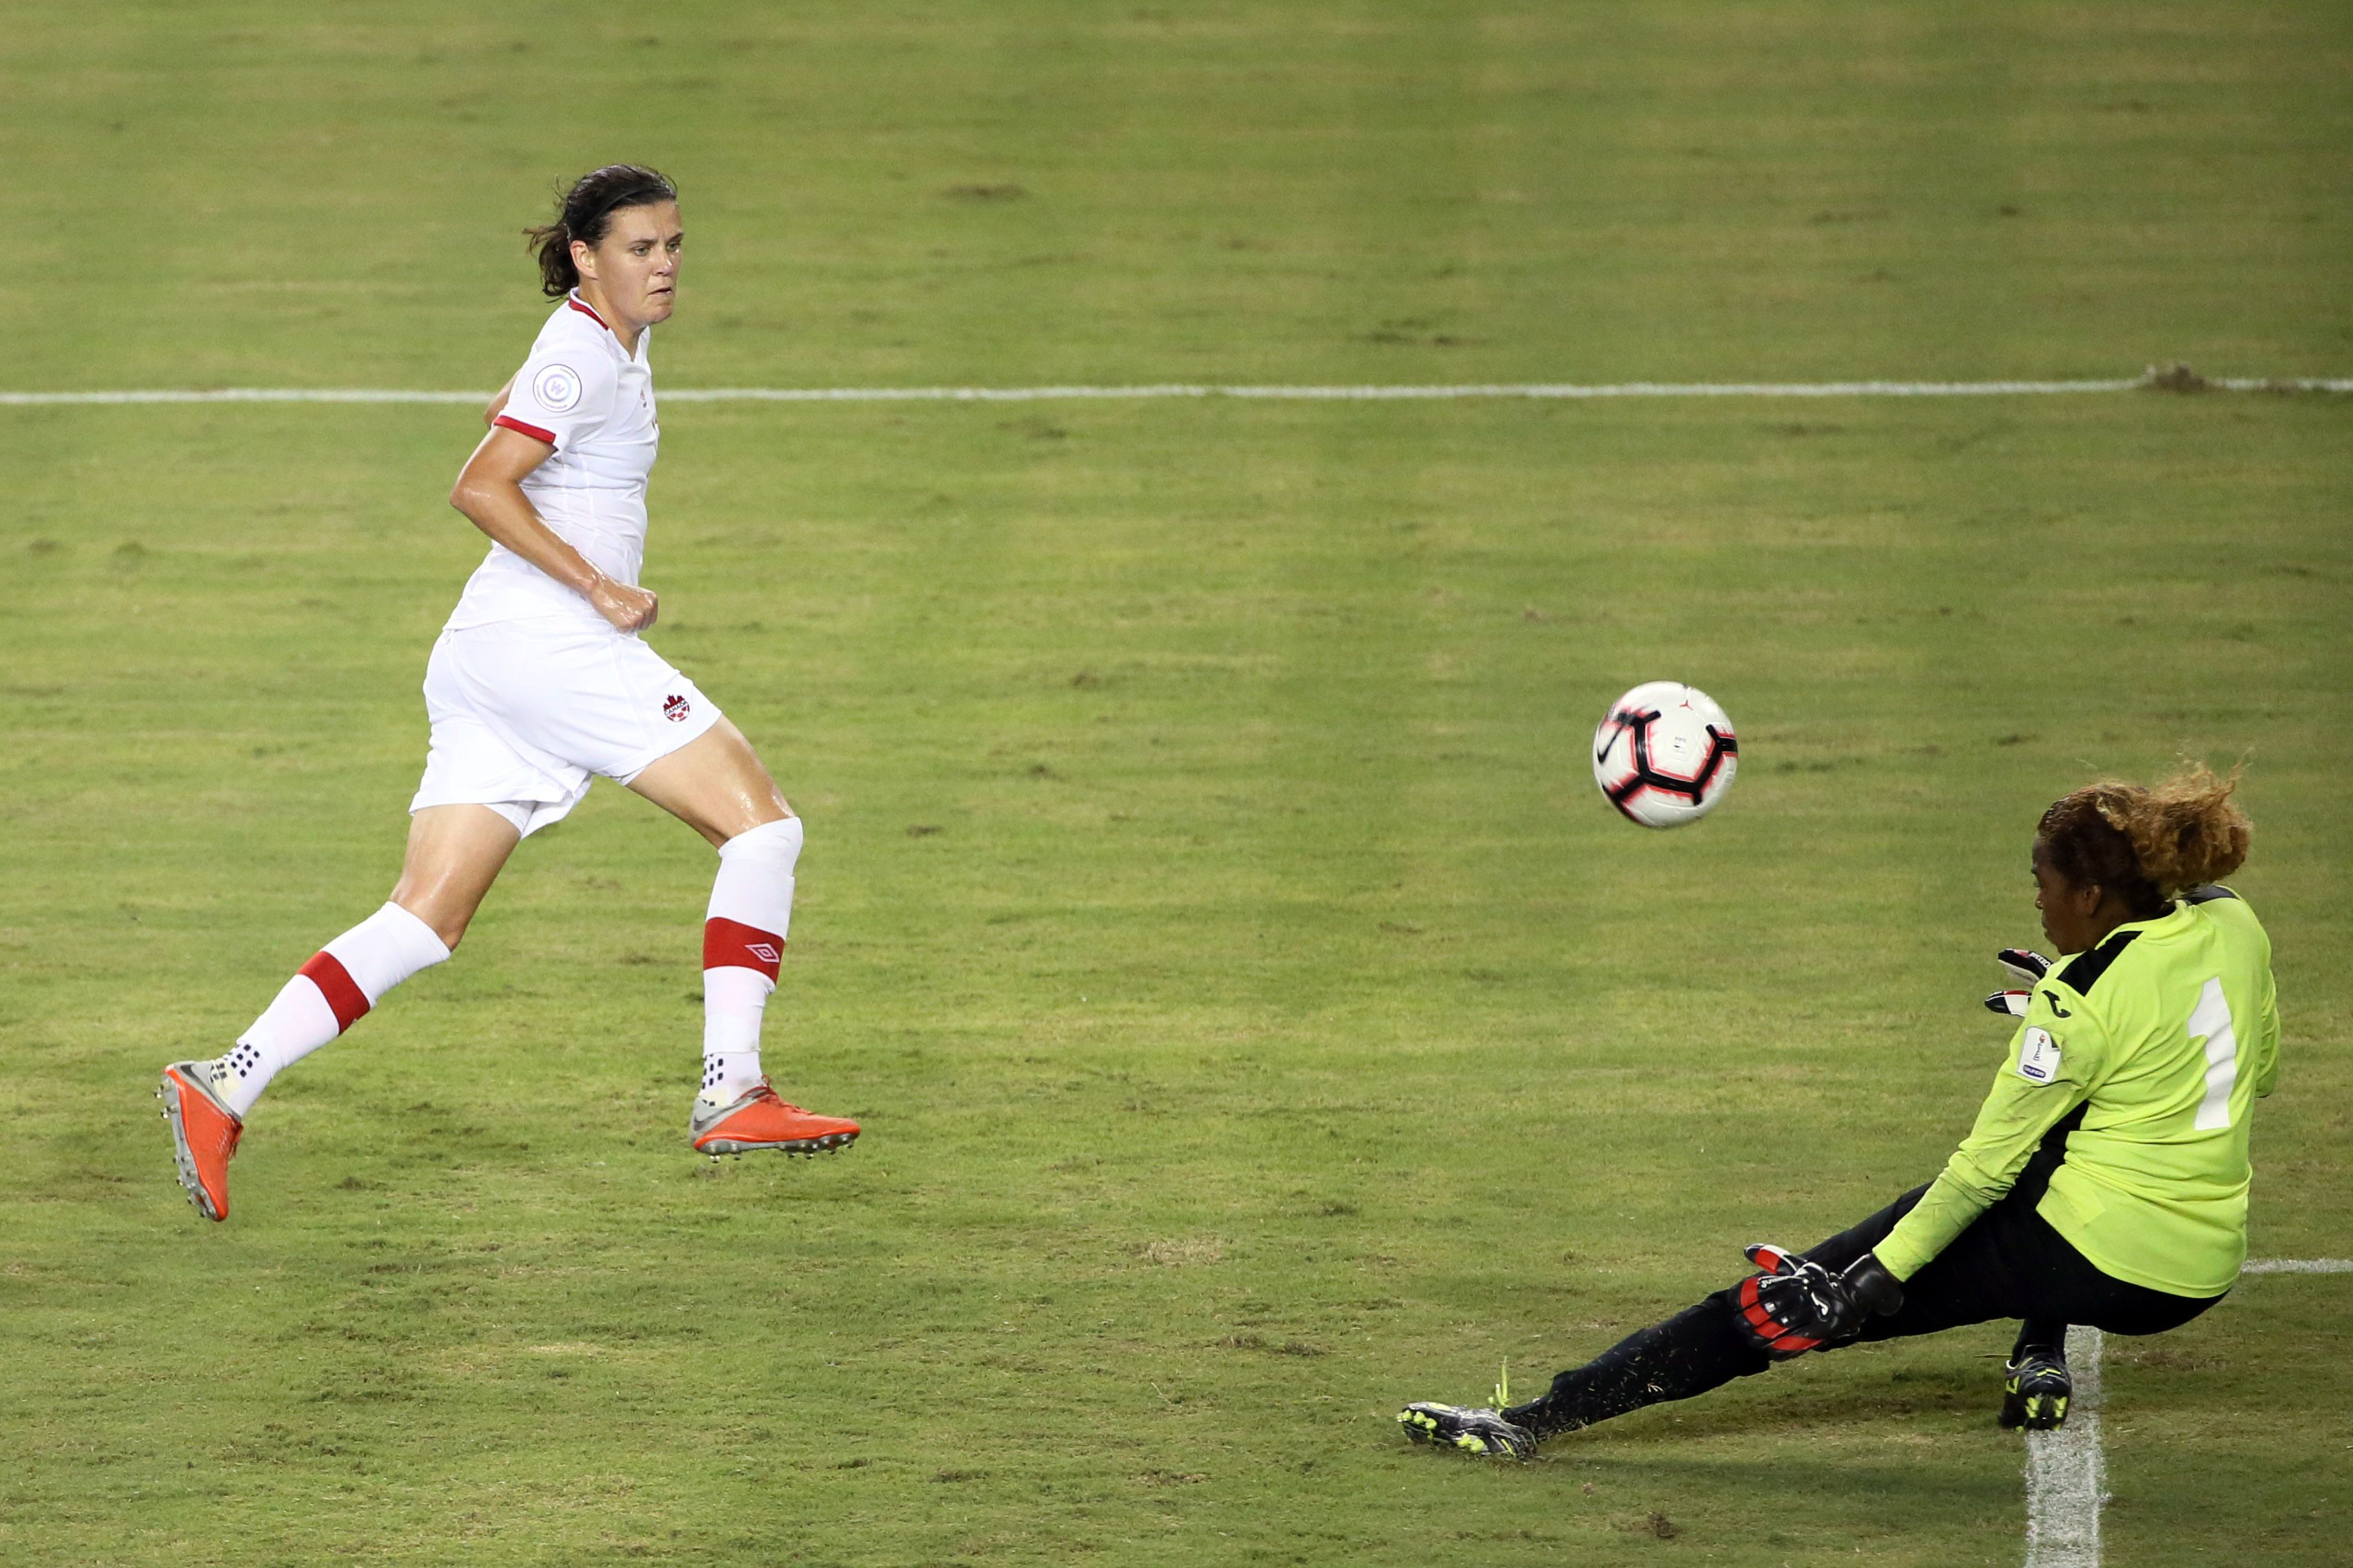 Canadian women's soccer team to play in Spain, Portugal ahead of World Cup